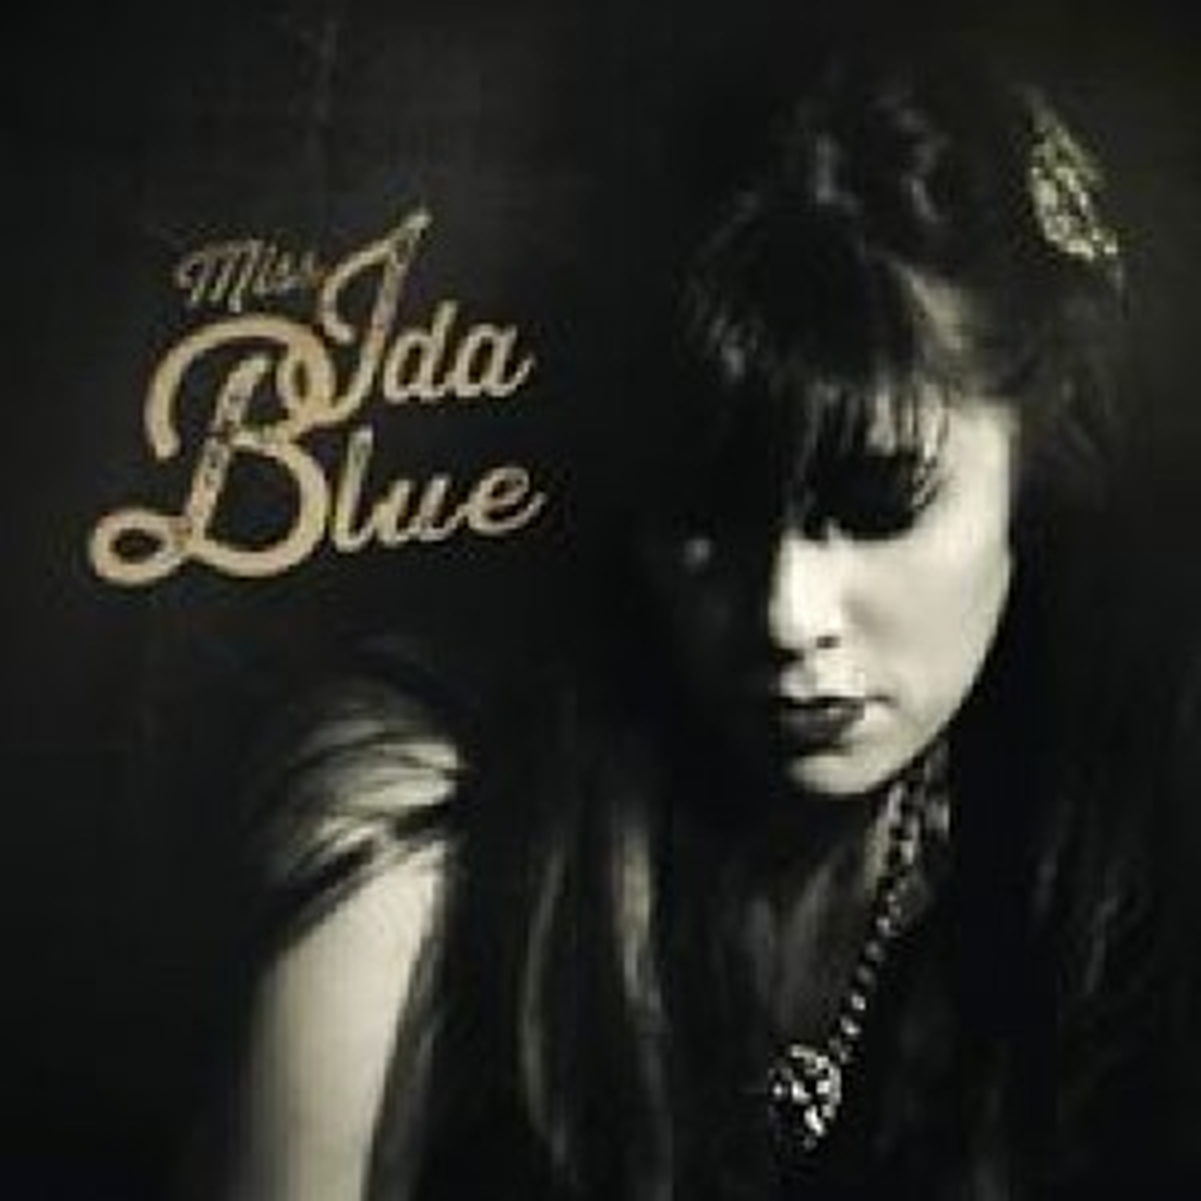 Miss Ida Blue | Wiki & Review | Everipedia